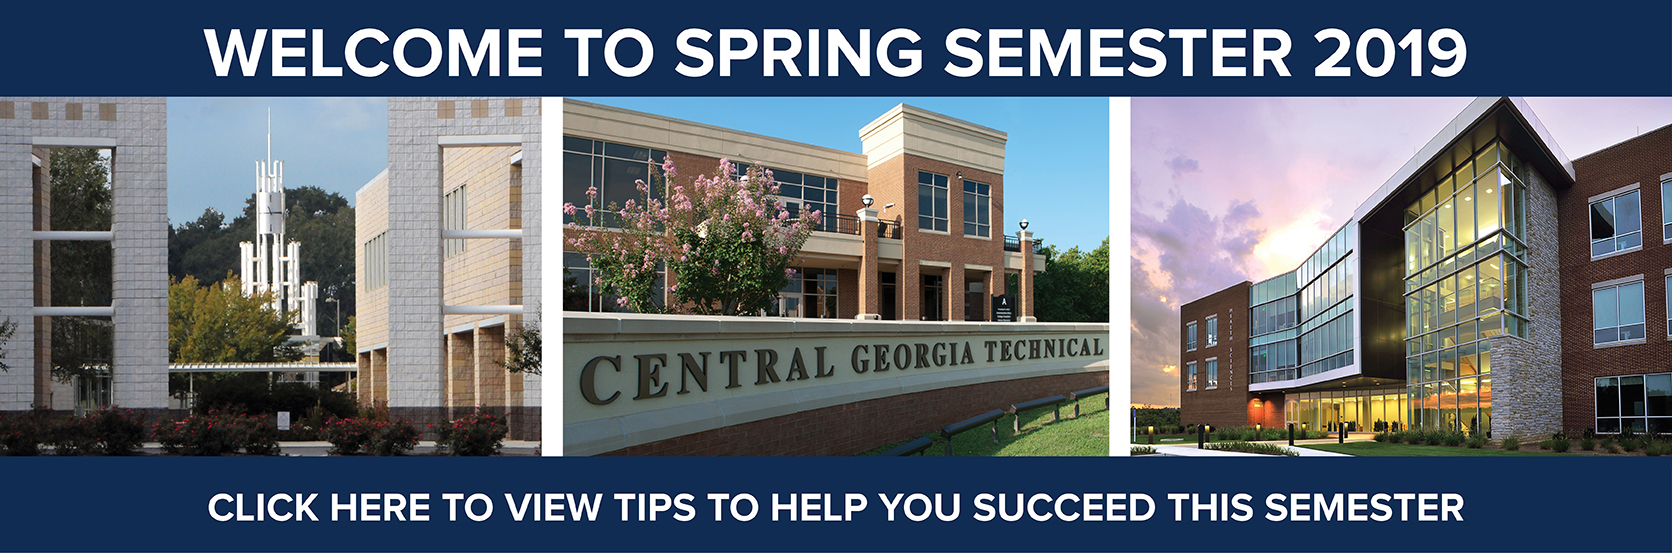 Welcome to Spring Semester 2019! Click the image to access tips to help you succeed this semester.